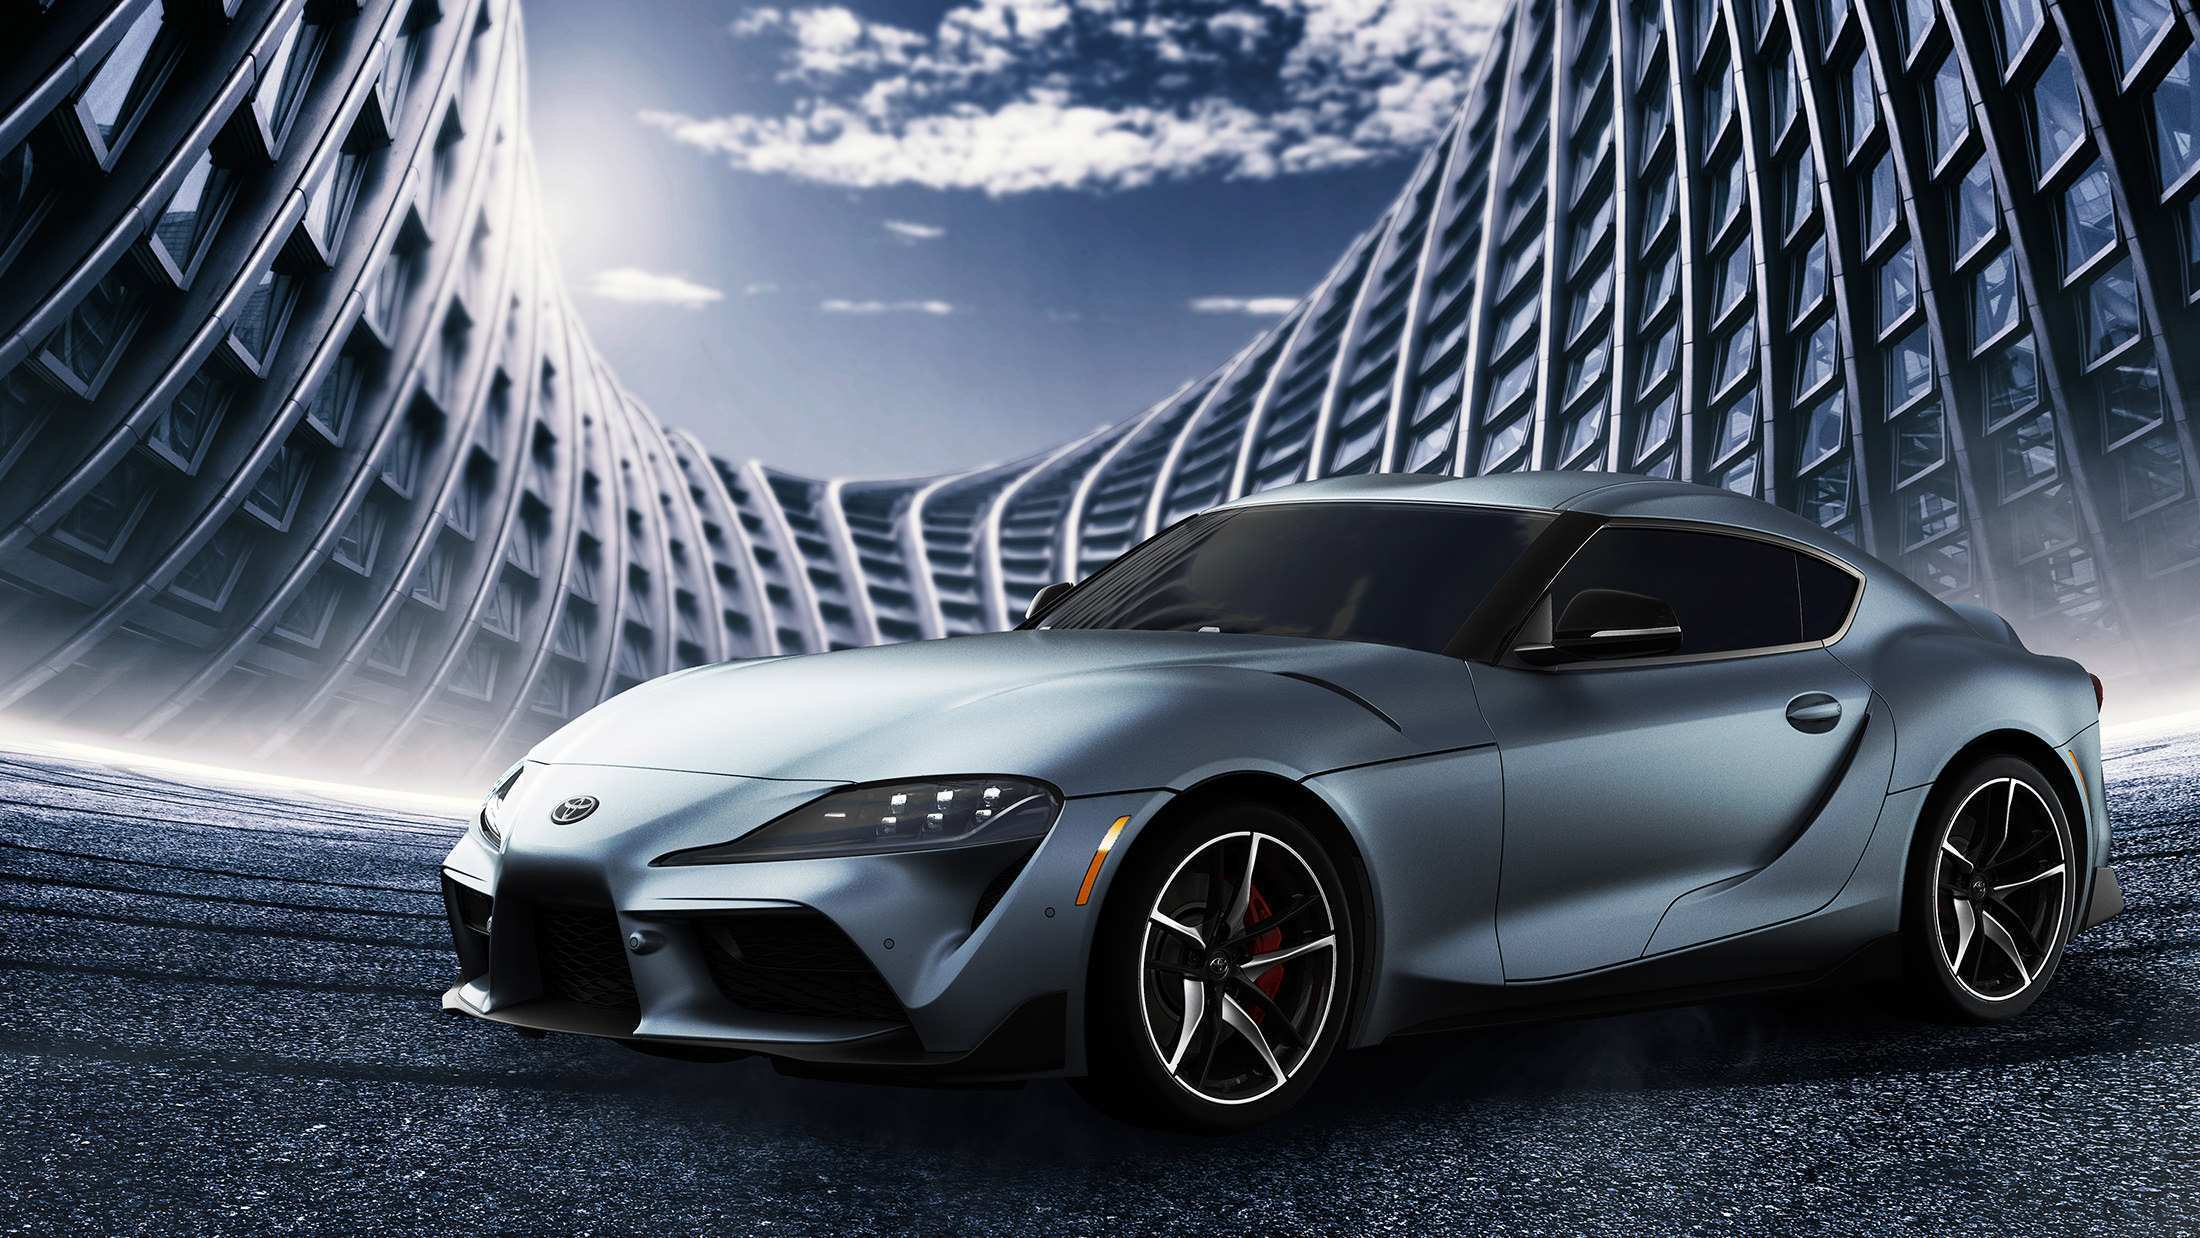 55 The Best 2020 Toyota 86 Redesign And Review